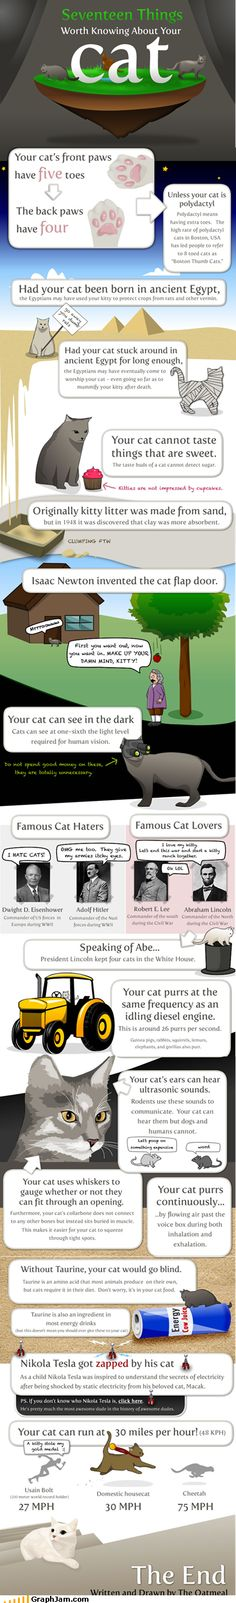 things about cats